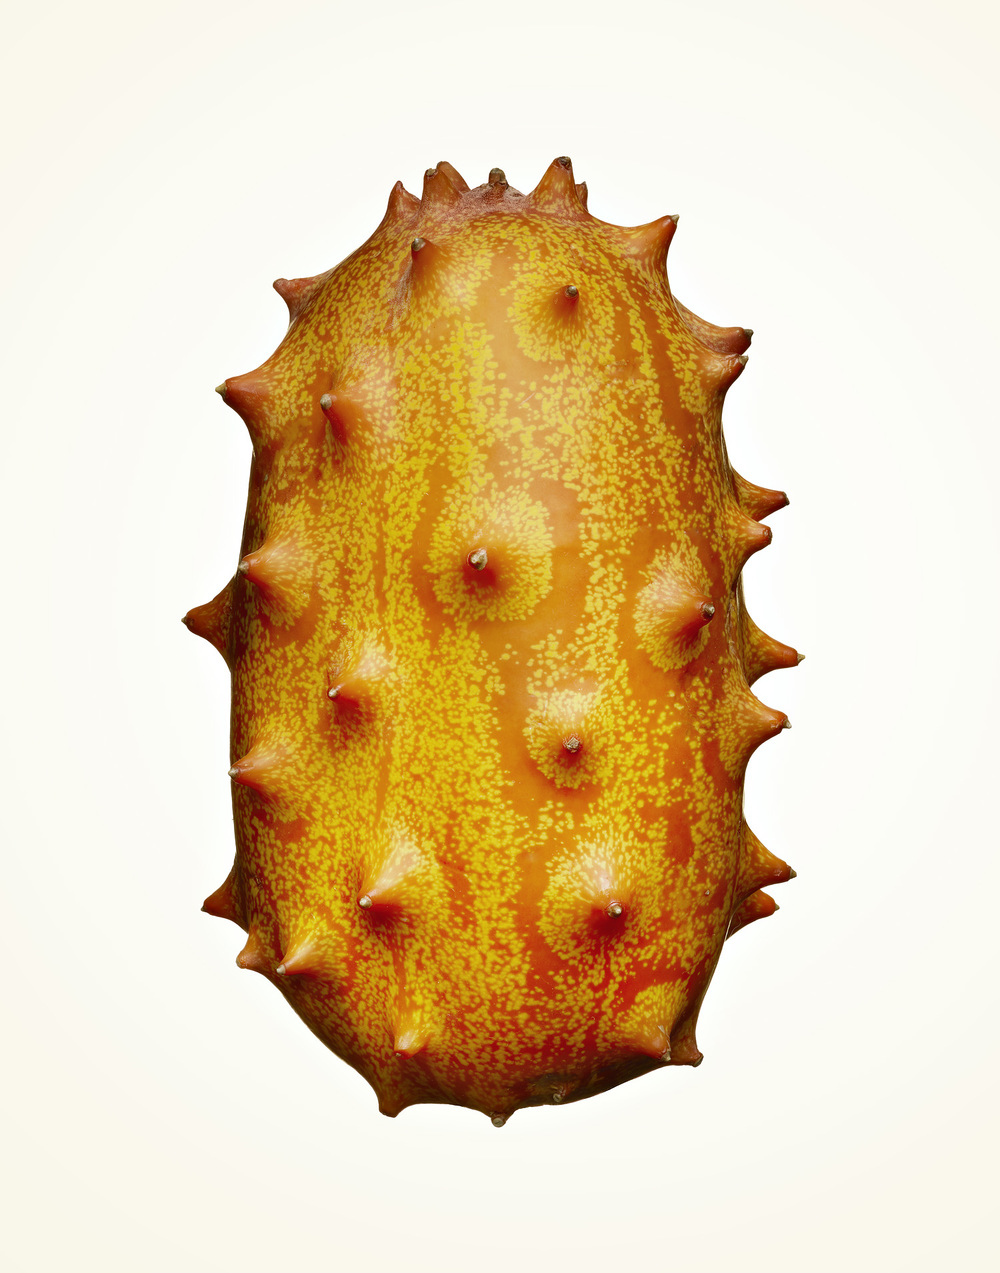 Horned Melon - Whole